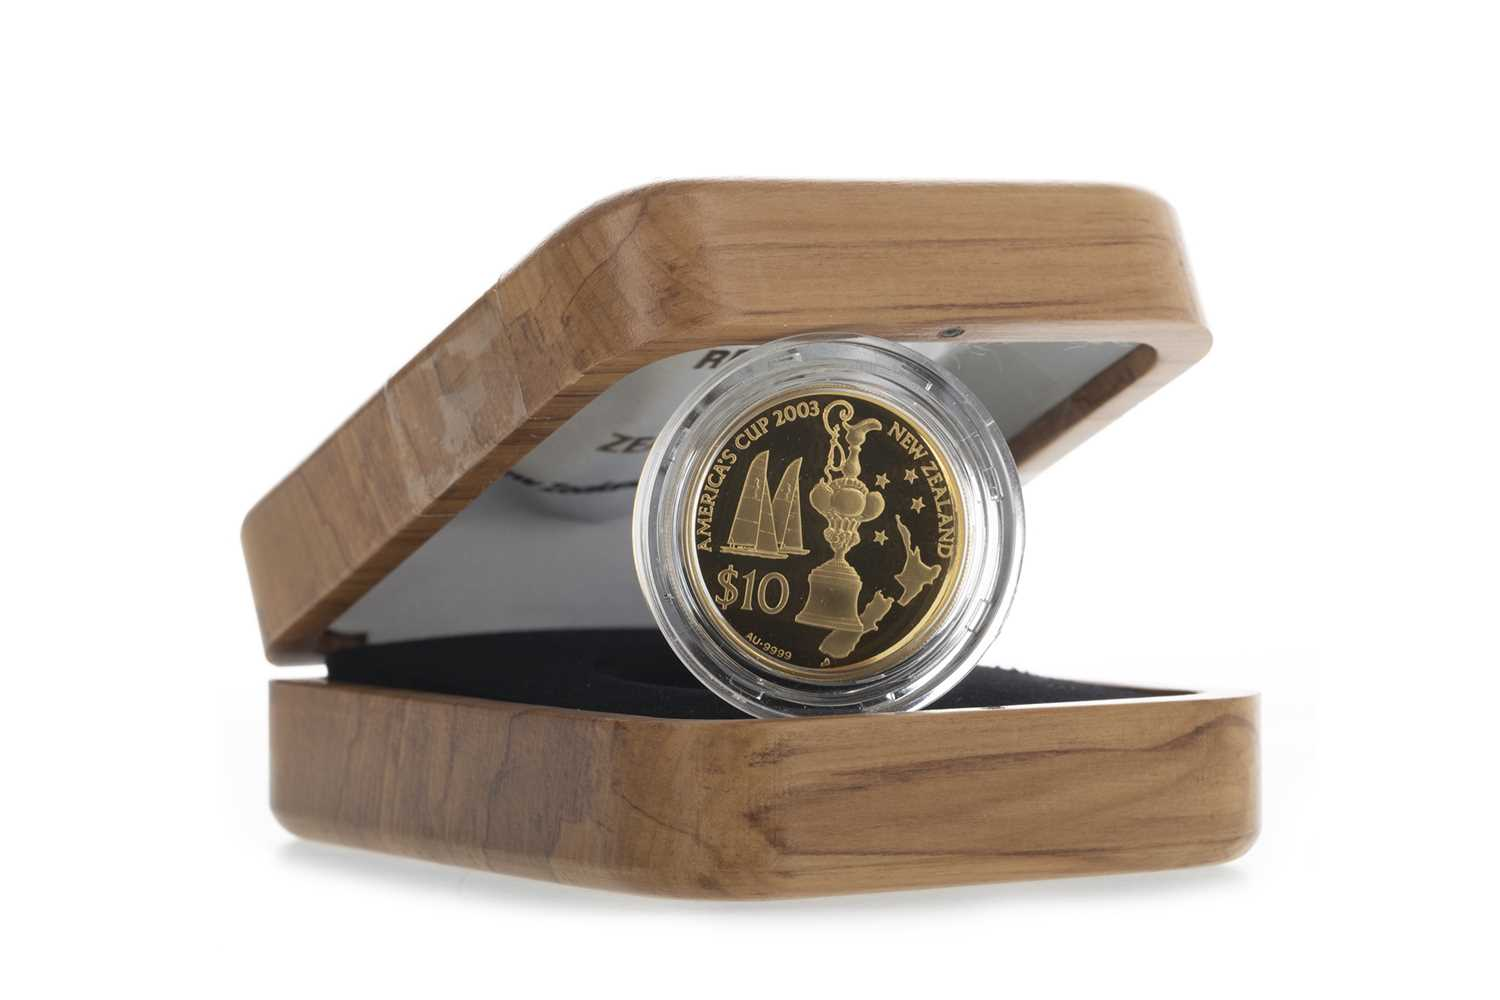 Lot 45 - THE NEW ZEALAND AMERICAS CUP TEN DOLLAR $10 PROOF COIN